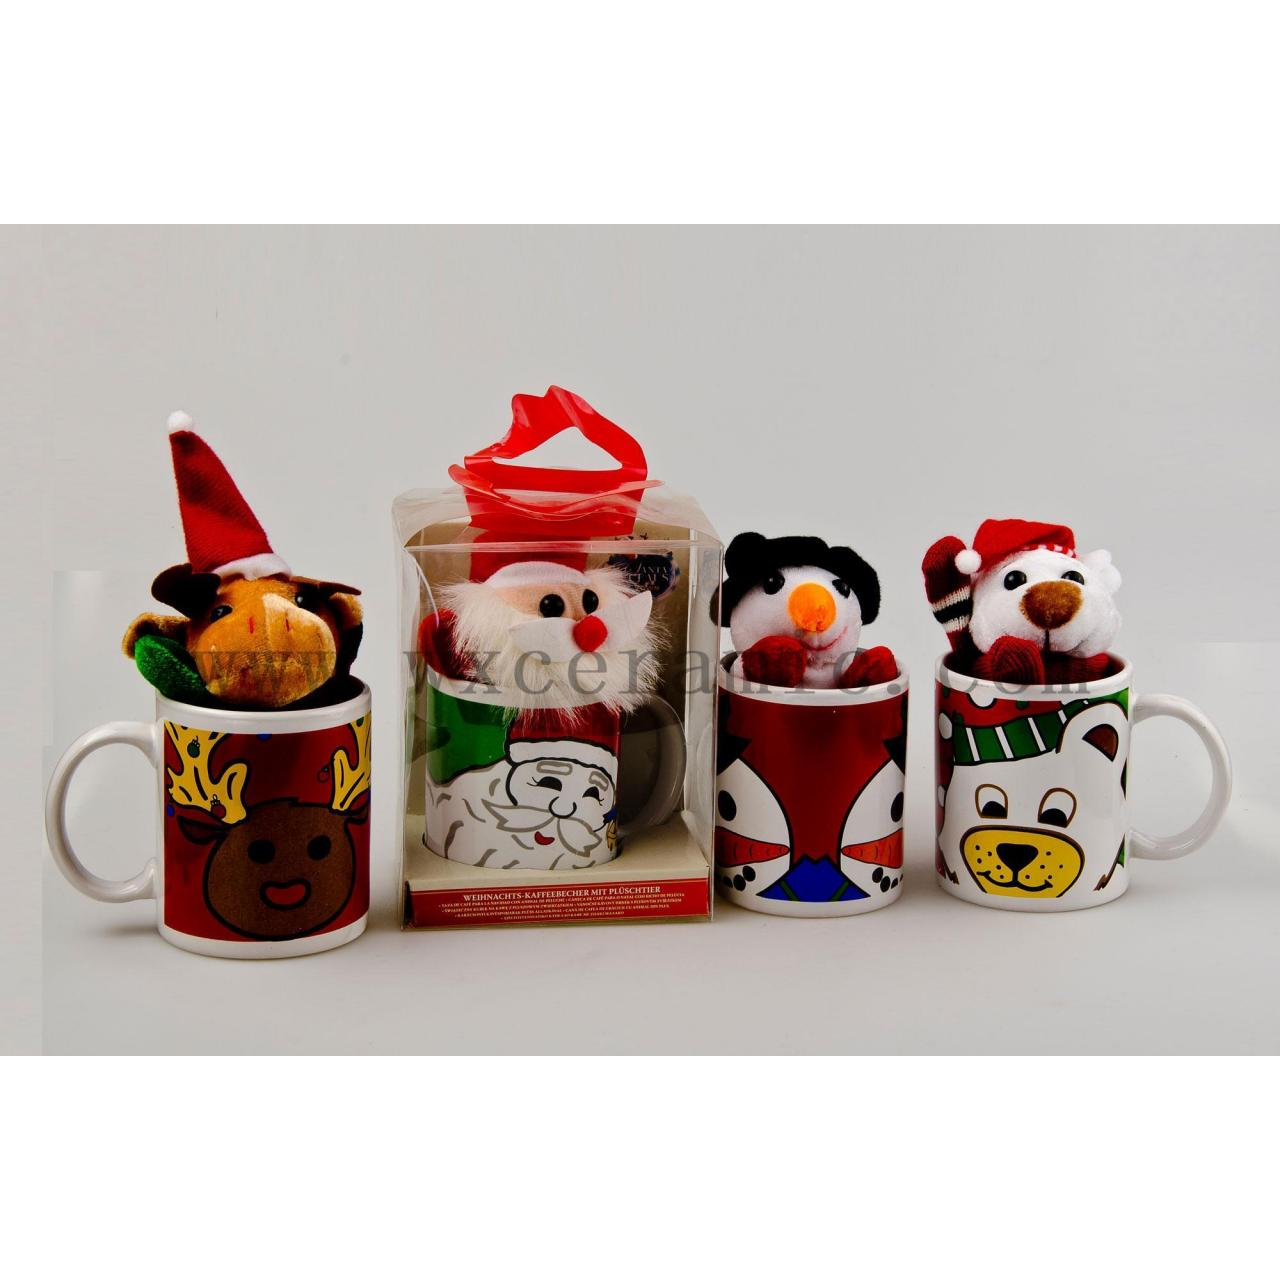 PVC box for mugs,coffee mug with toy for gift, ceramic mug for promotional